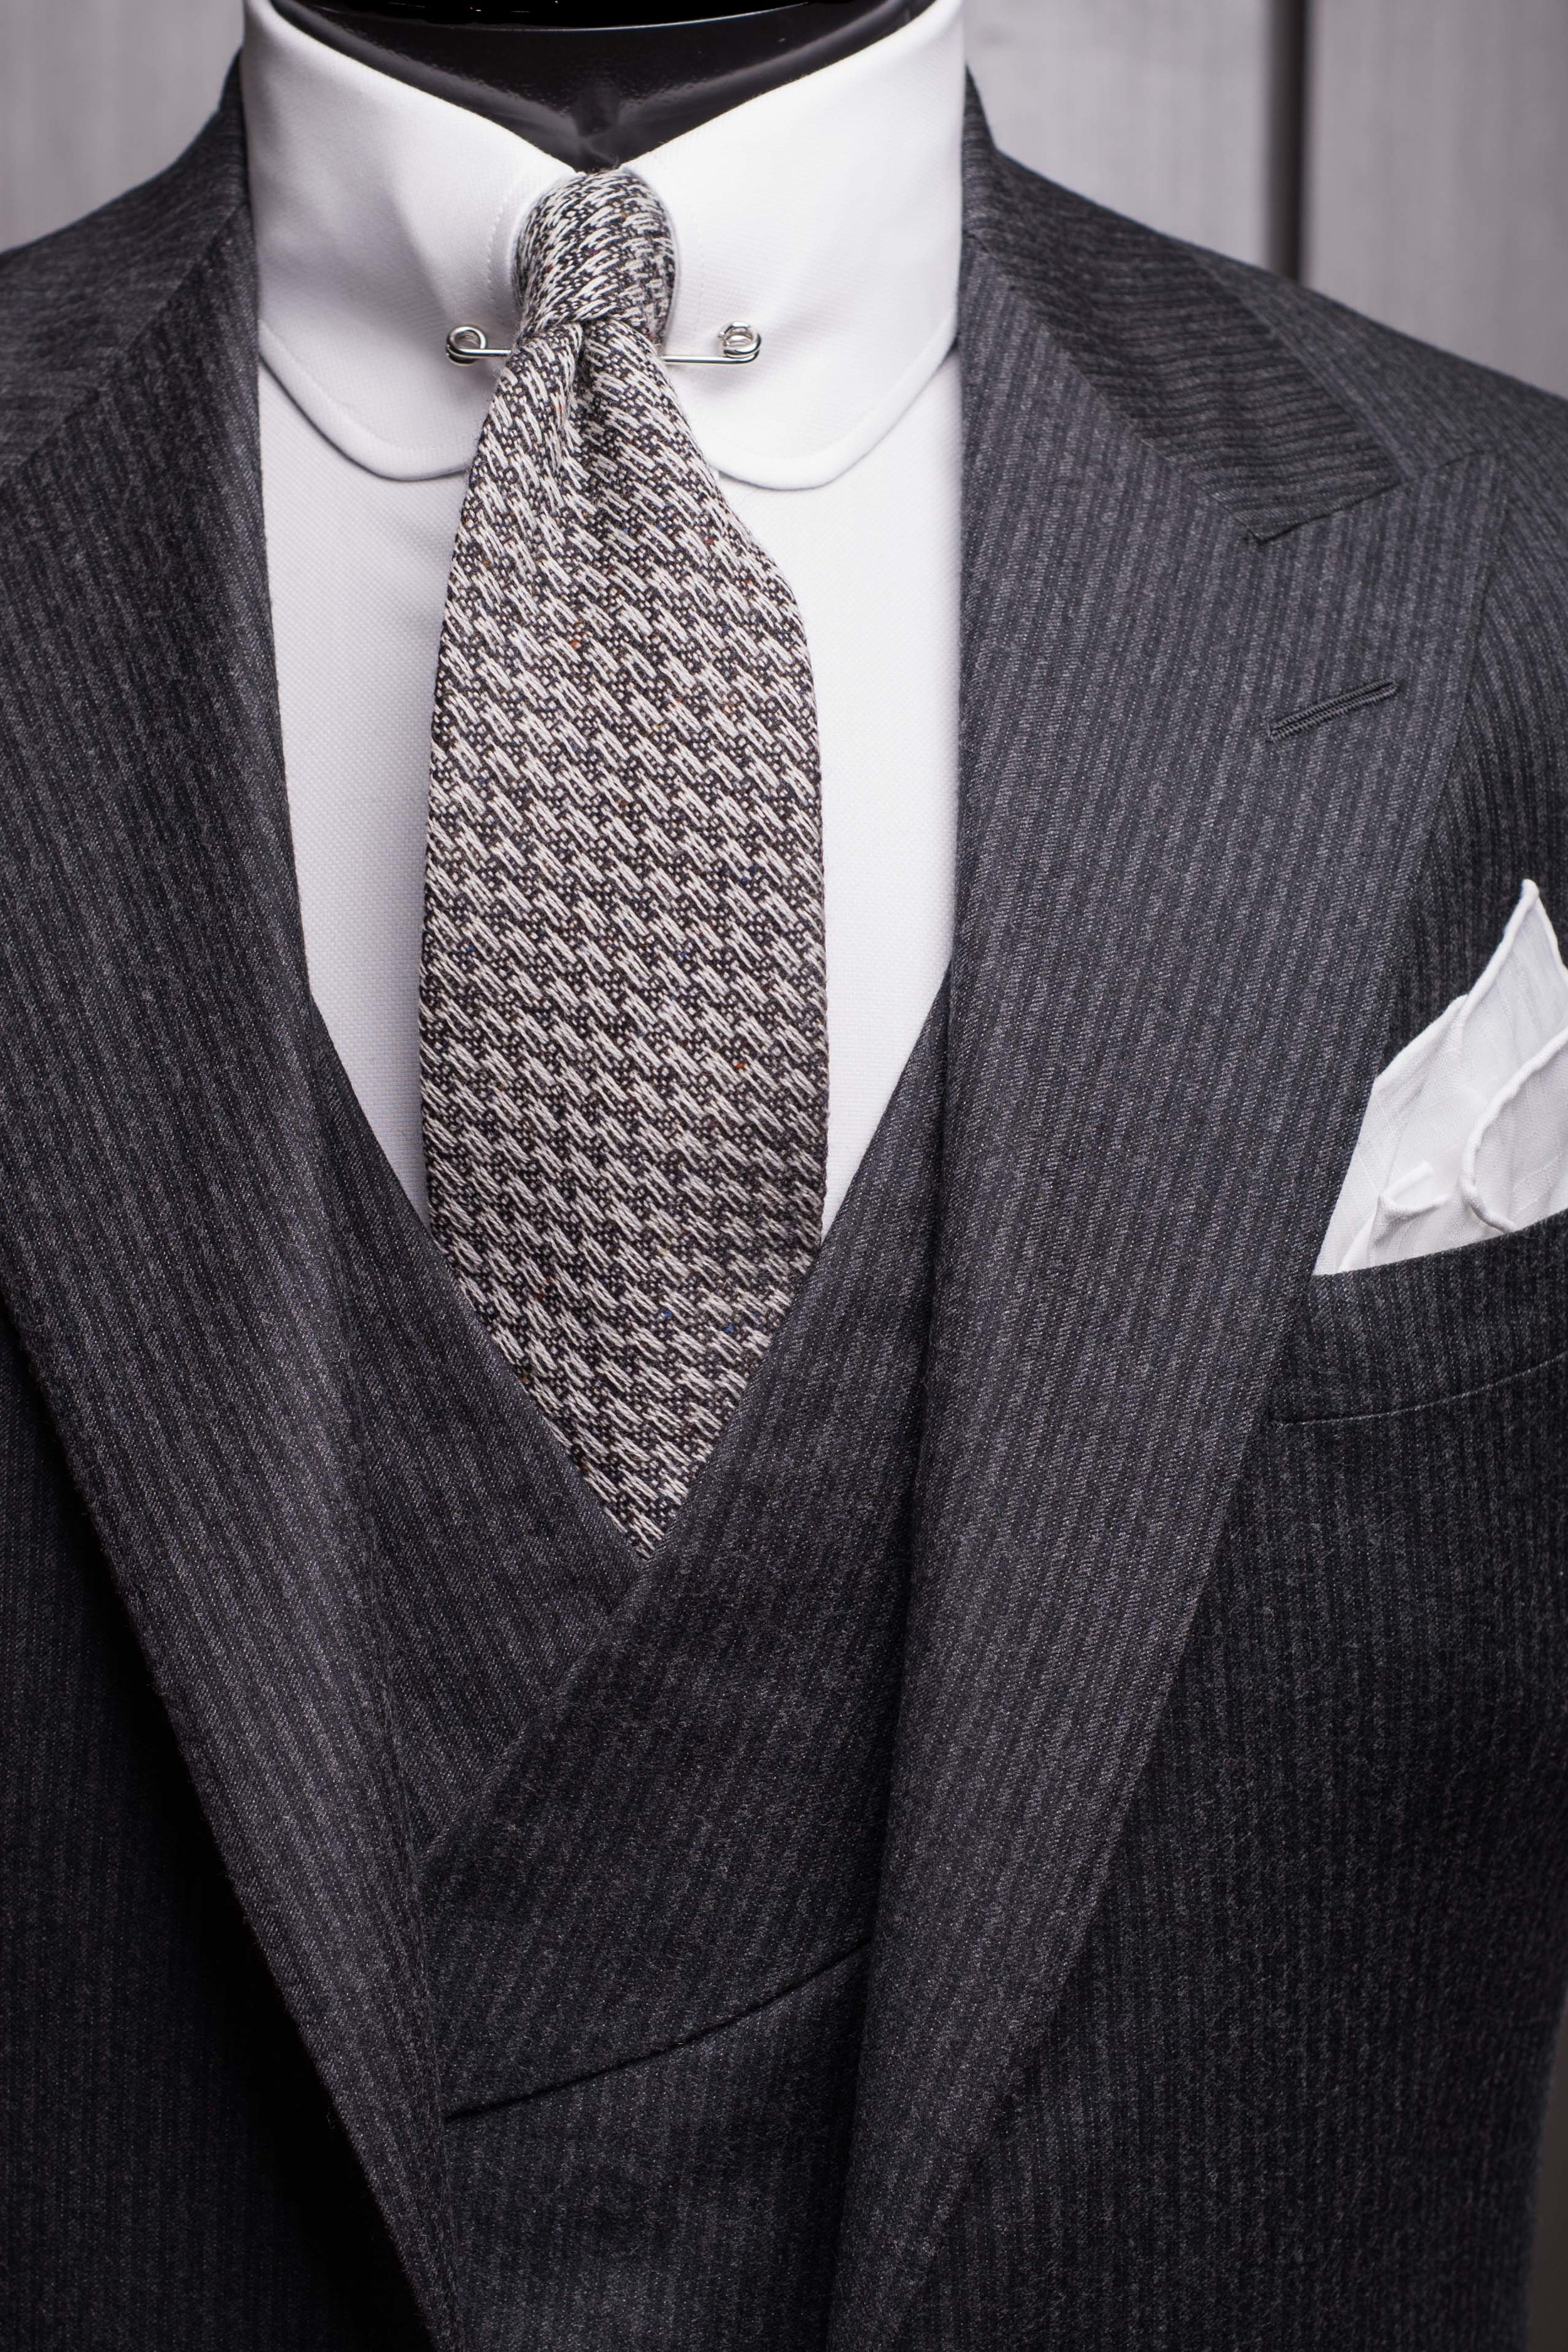 A heavily textured wool tie plays an unexpected but effective role in this highly formal monochromatic presentation.